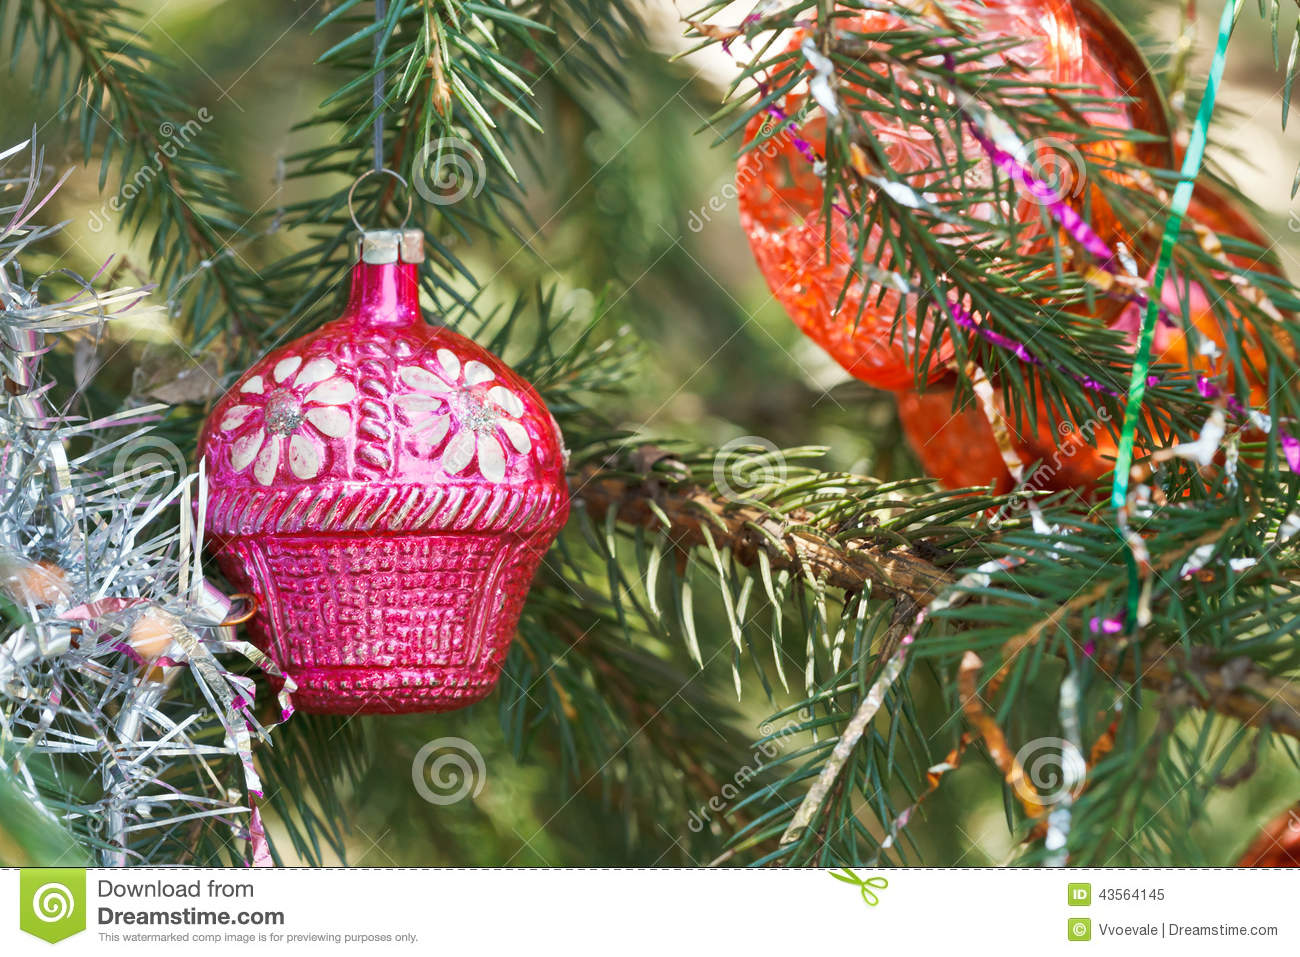 pink house christmas decoration stock photo - image: 43564145